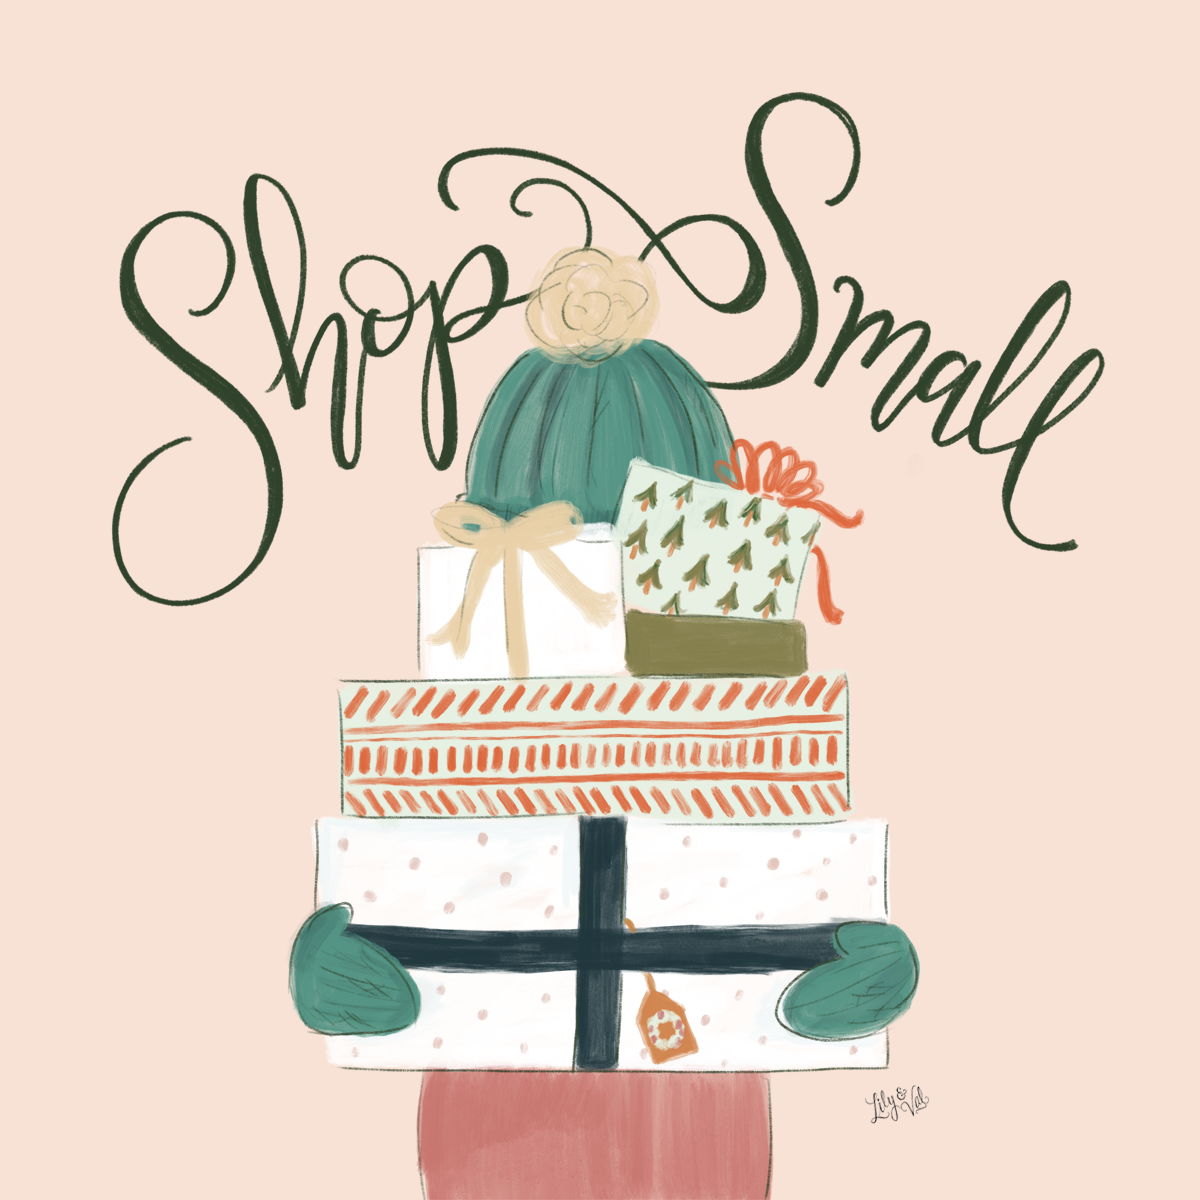 Free Hand-drawn Shop Small graphic to share the love on Small Business Saturday